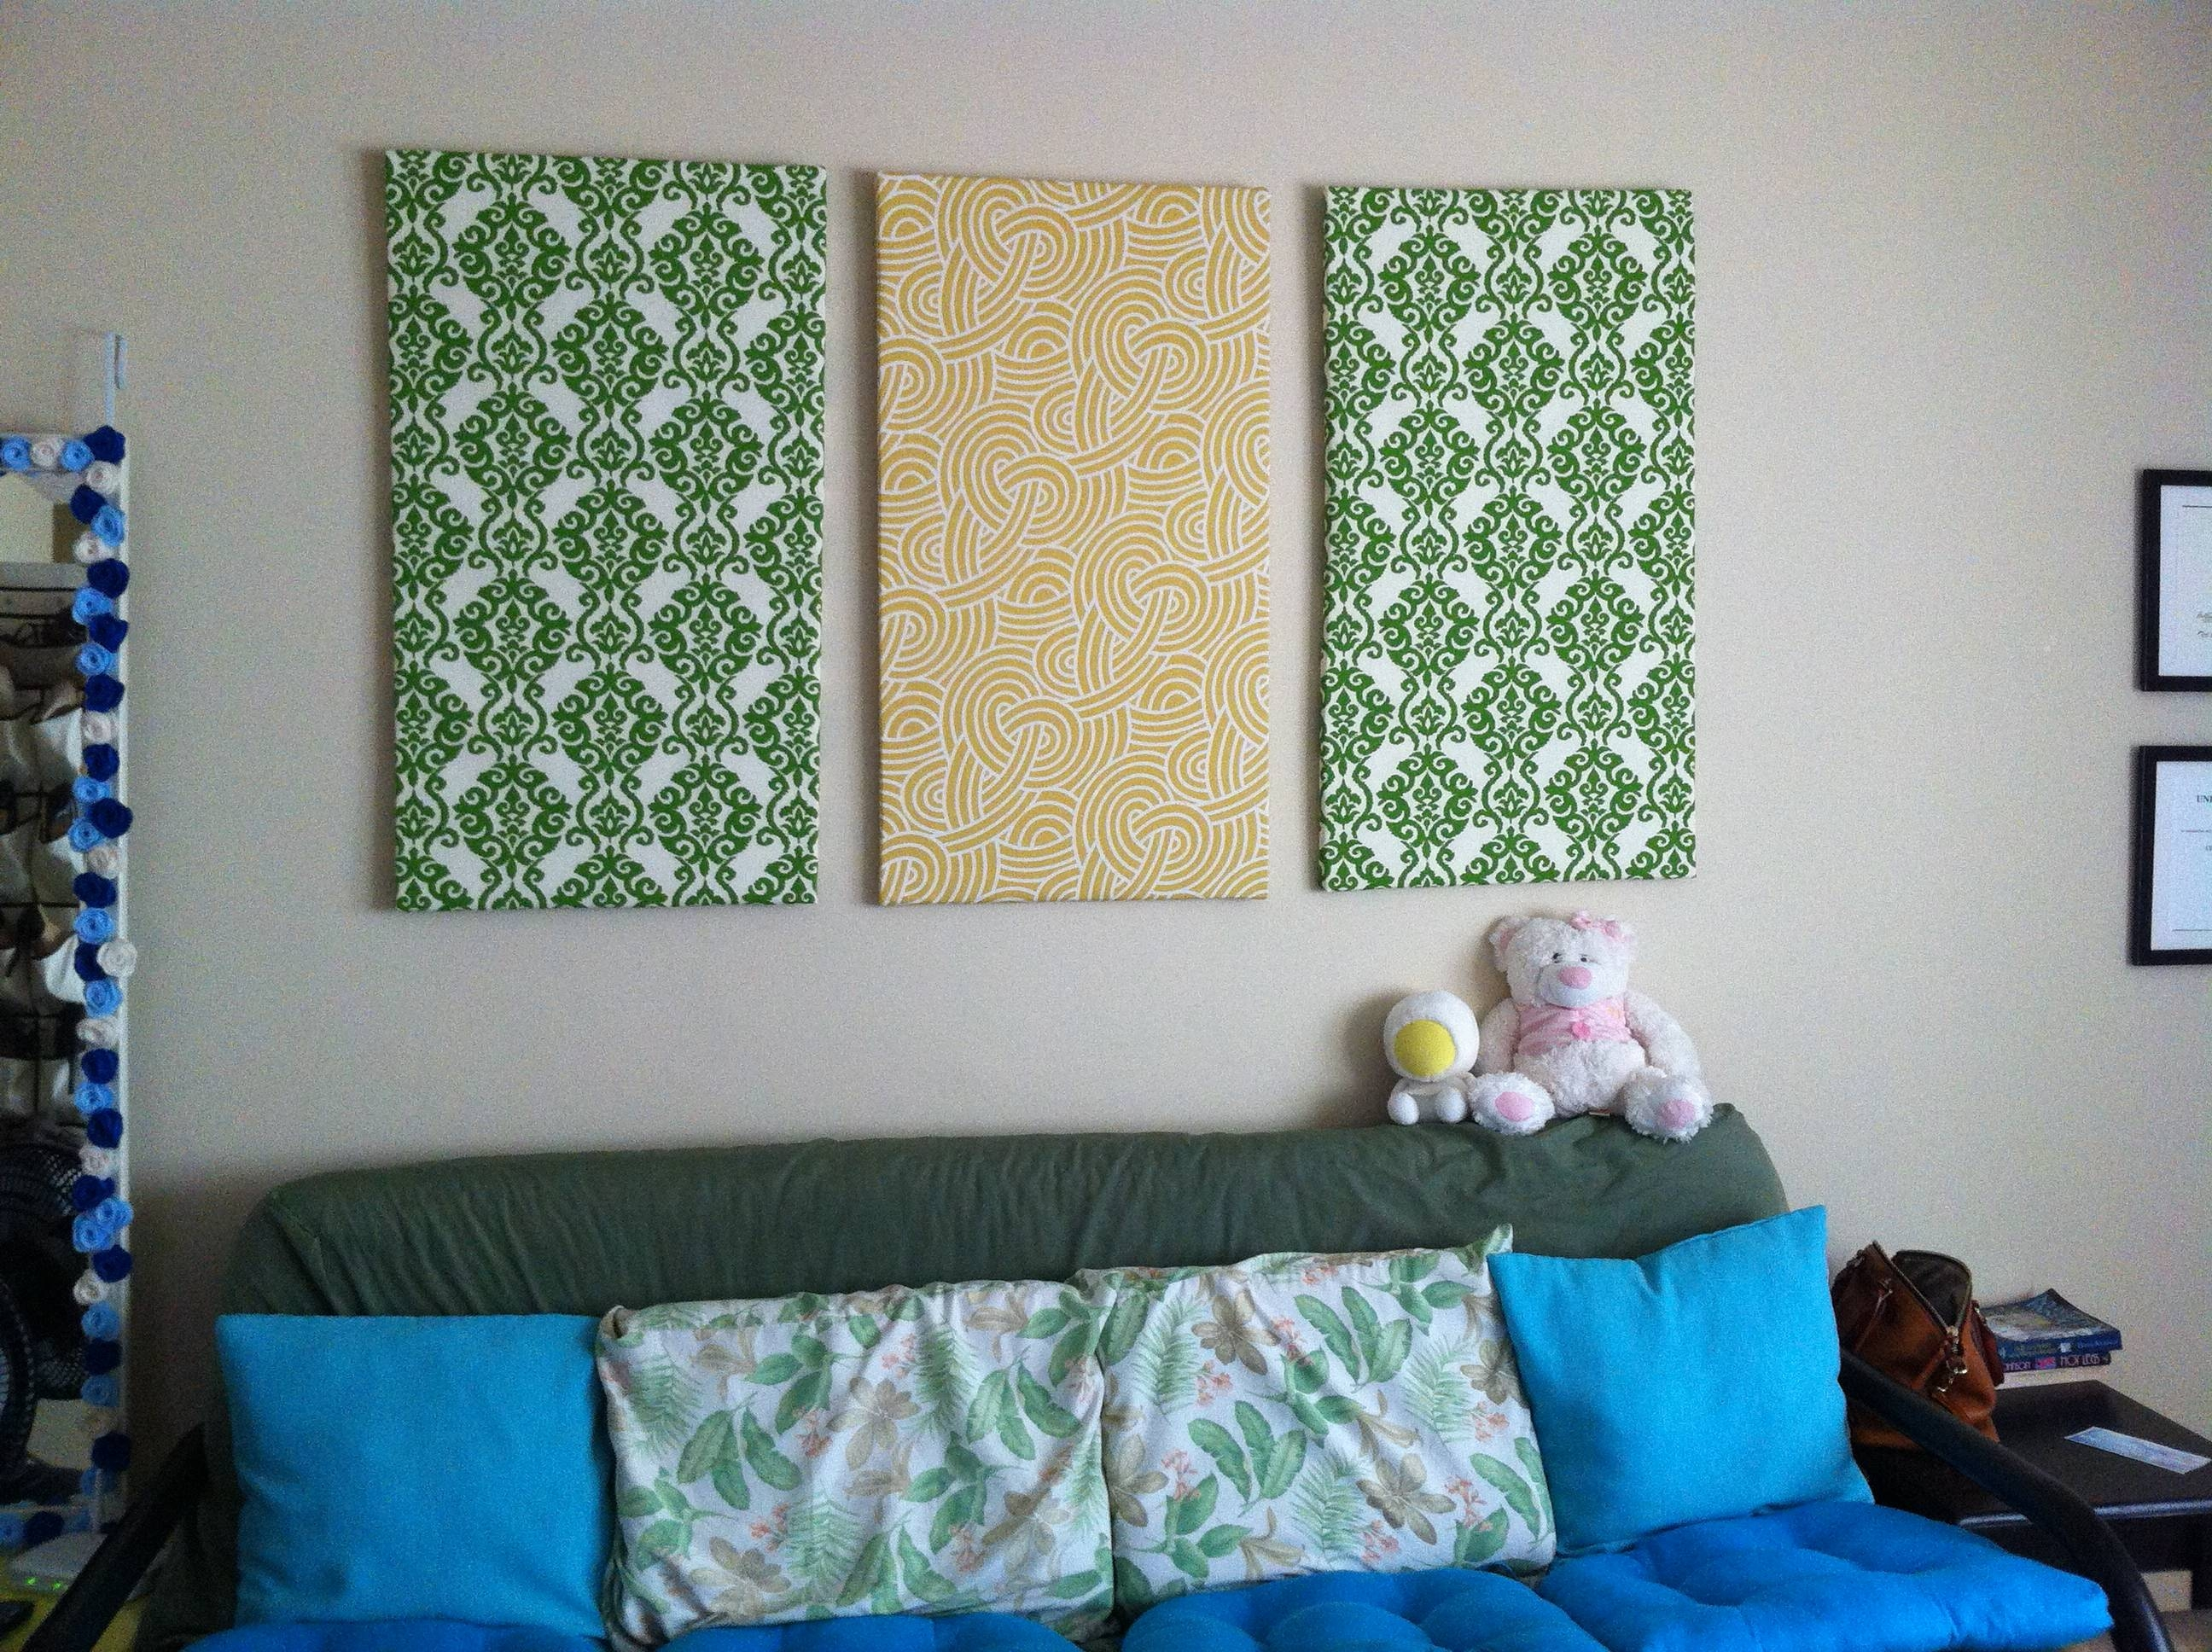 Diy Fabric Wall Art | Crafting Is Sanity With Most Recently Released Fabric Wall Art (View 6 of 20)